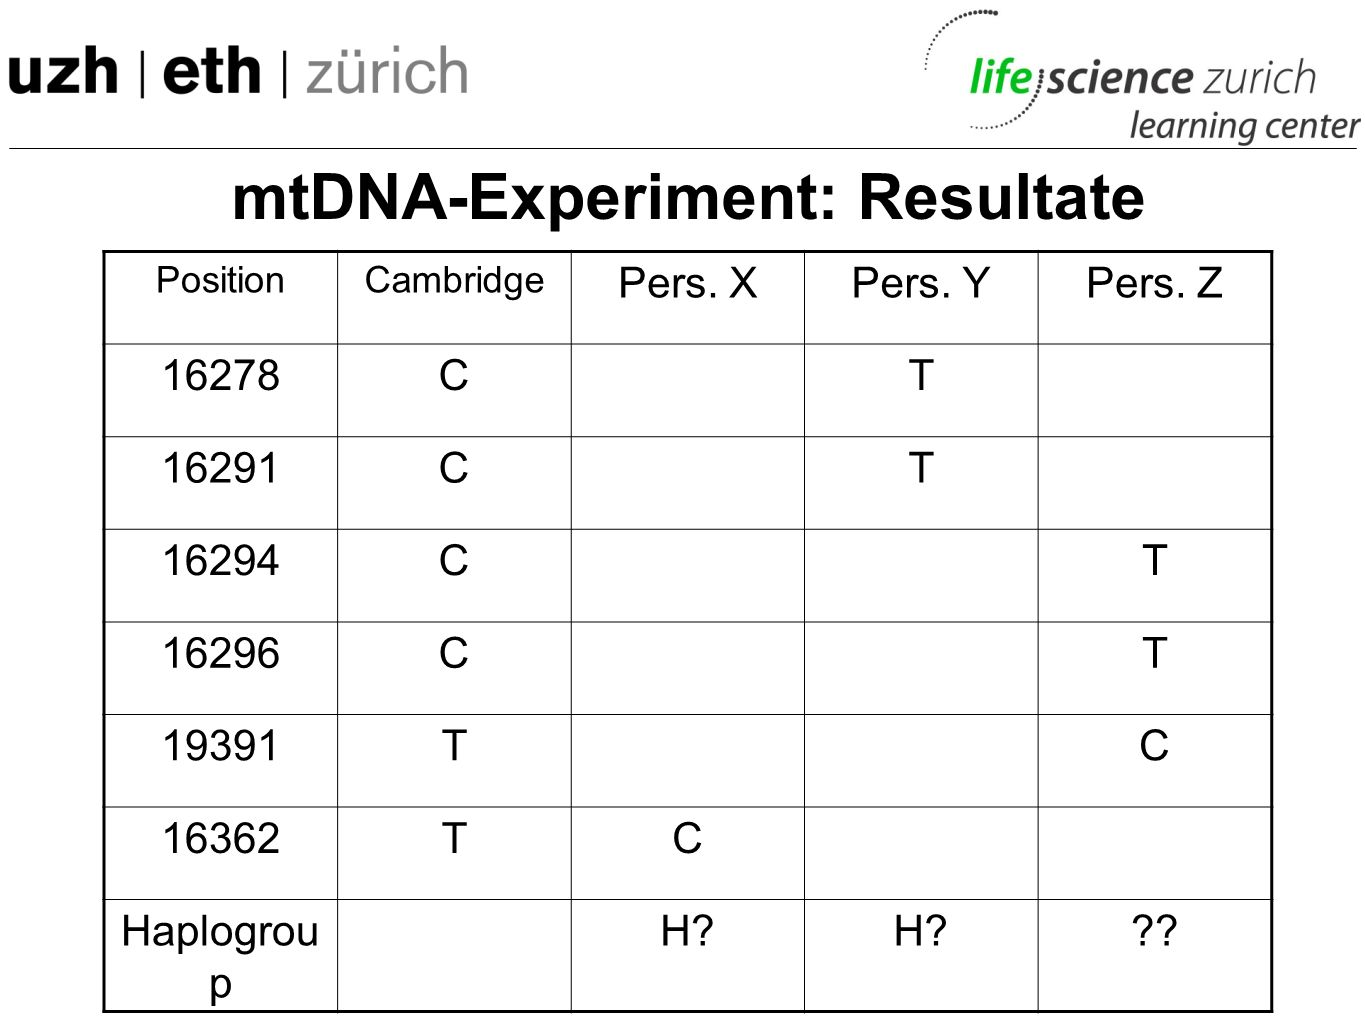 mtDNA-Experiment: Resultate